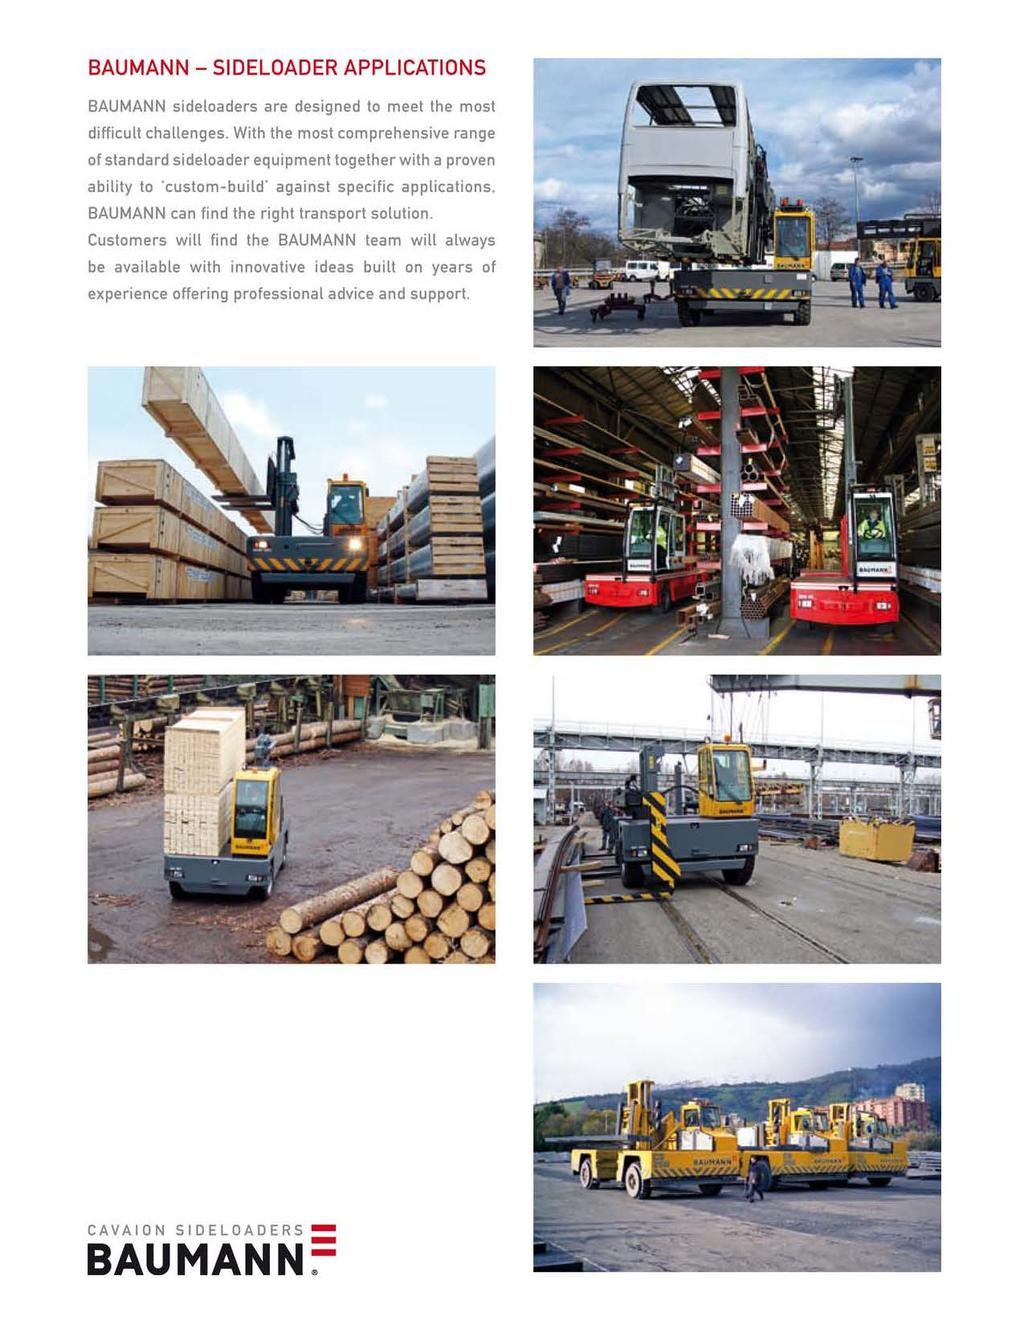 BAUMANN- SIDELOADER APPLICATIONS BAUMANN sideloaders are designed to meet the most difficult challenges.